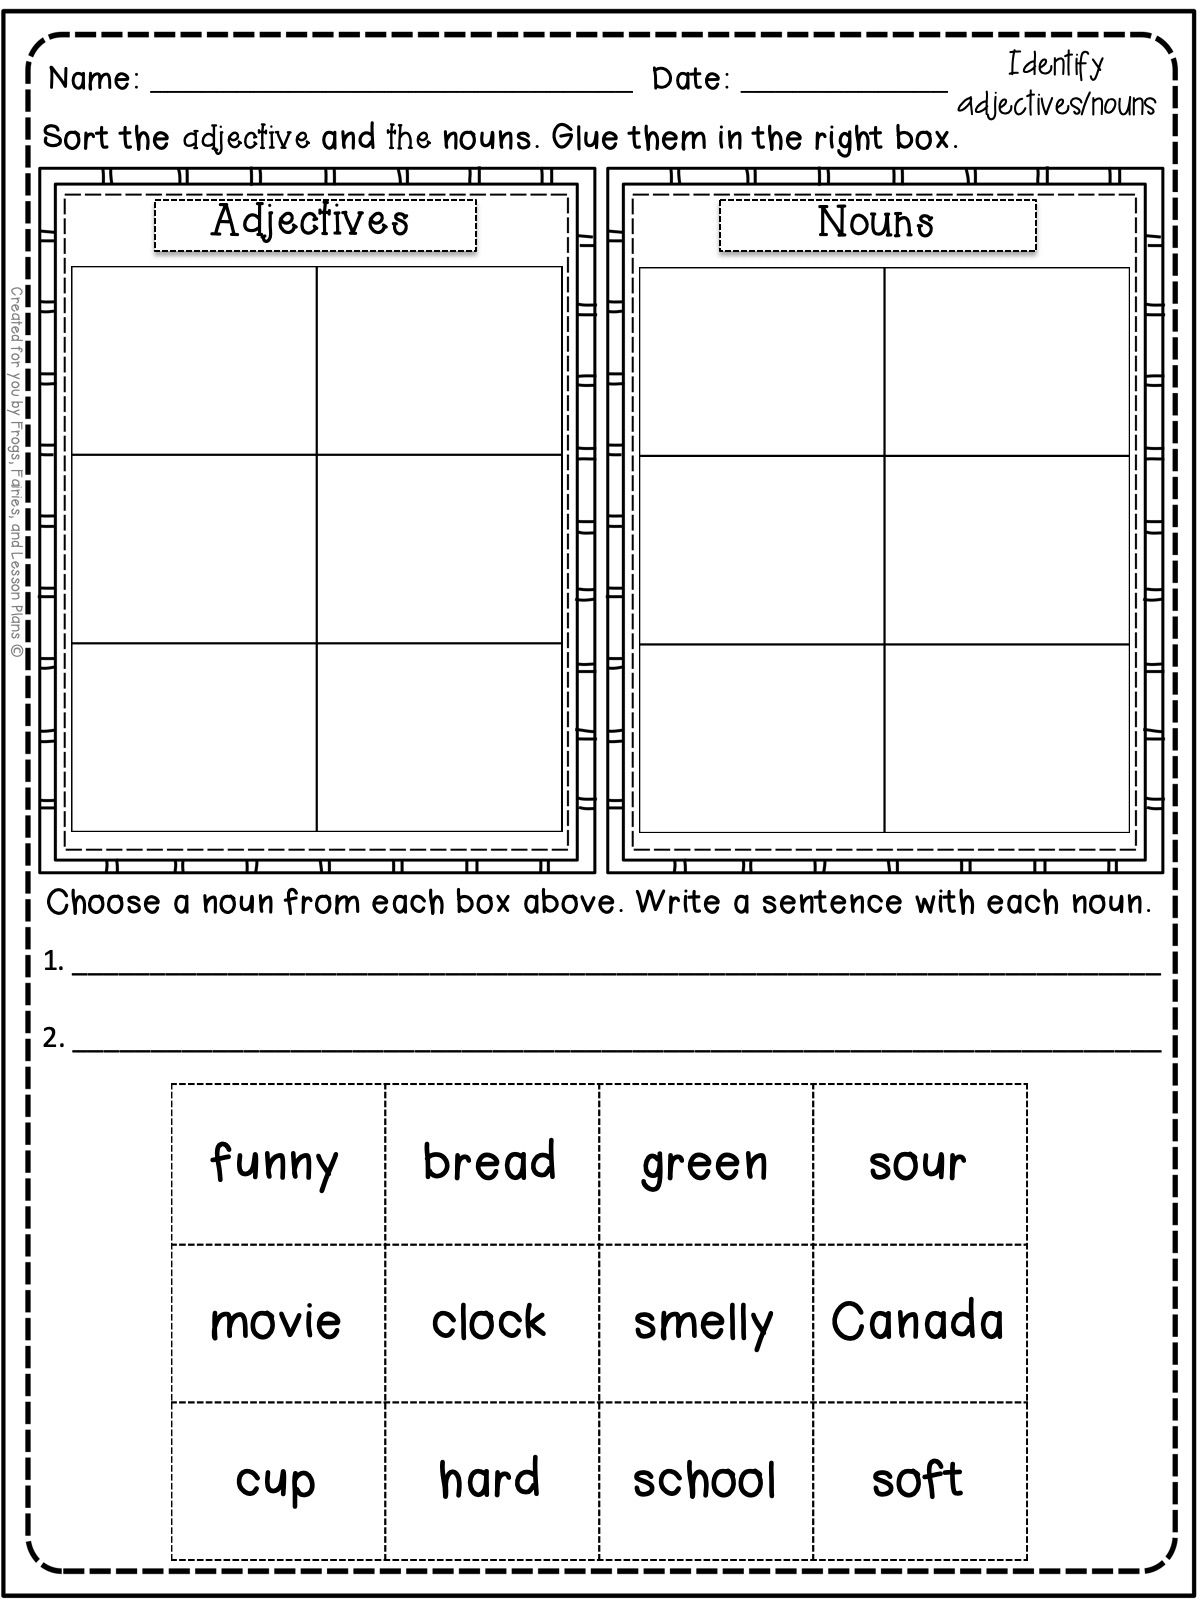 hight resolution of Adjective Resources For 1st Graders   Teaching adjectives